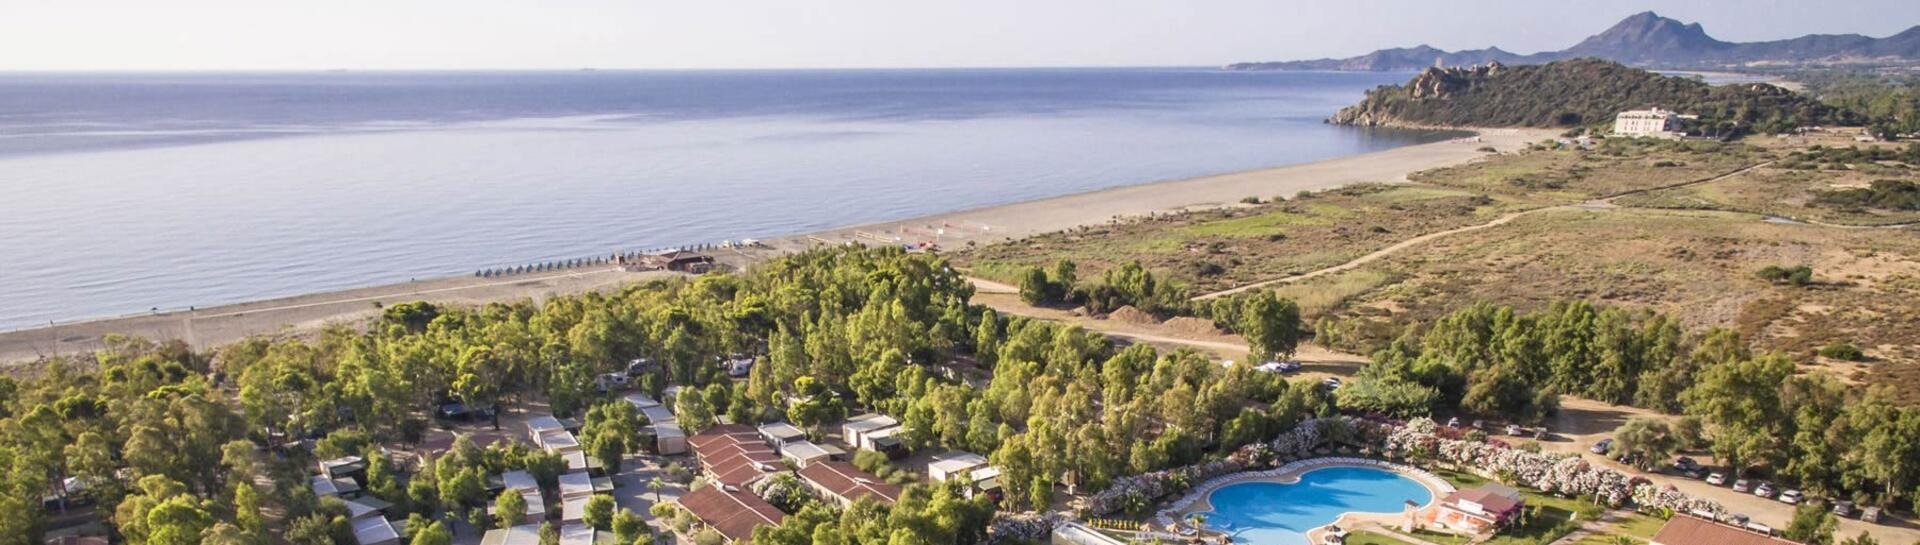 4mori en special-offer-end-of-july-and-early-august-in-village-for-families-on-the-sea-sardinia 011